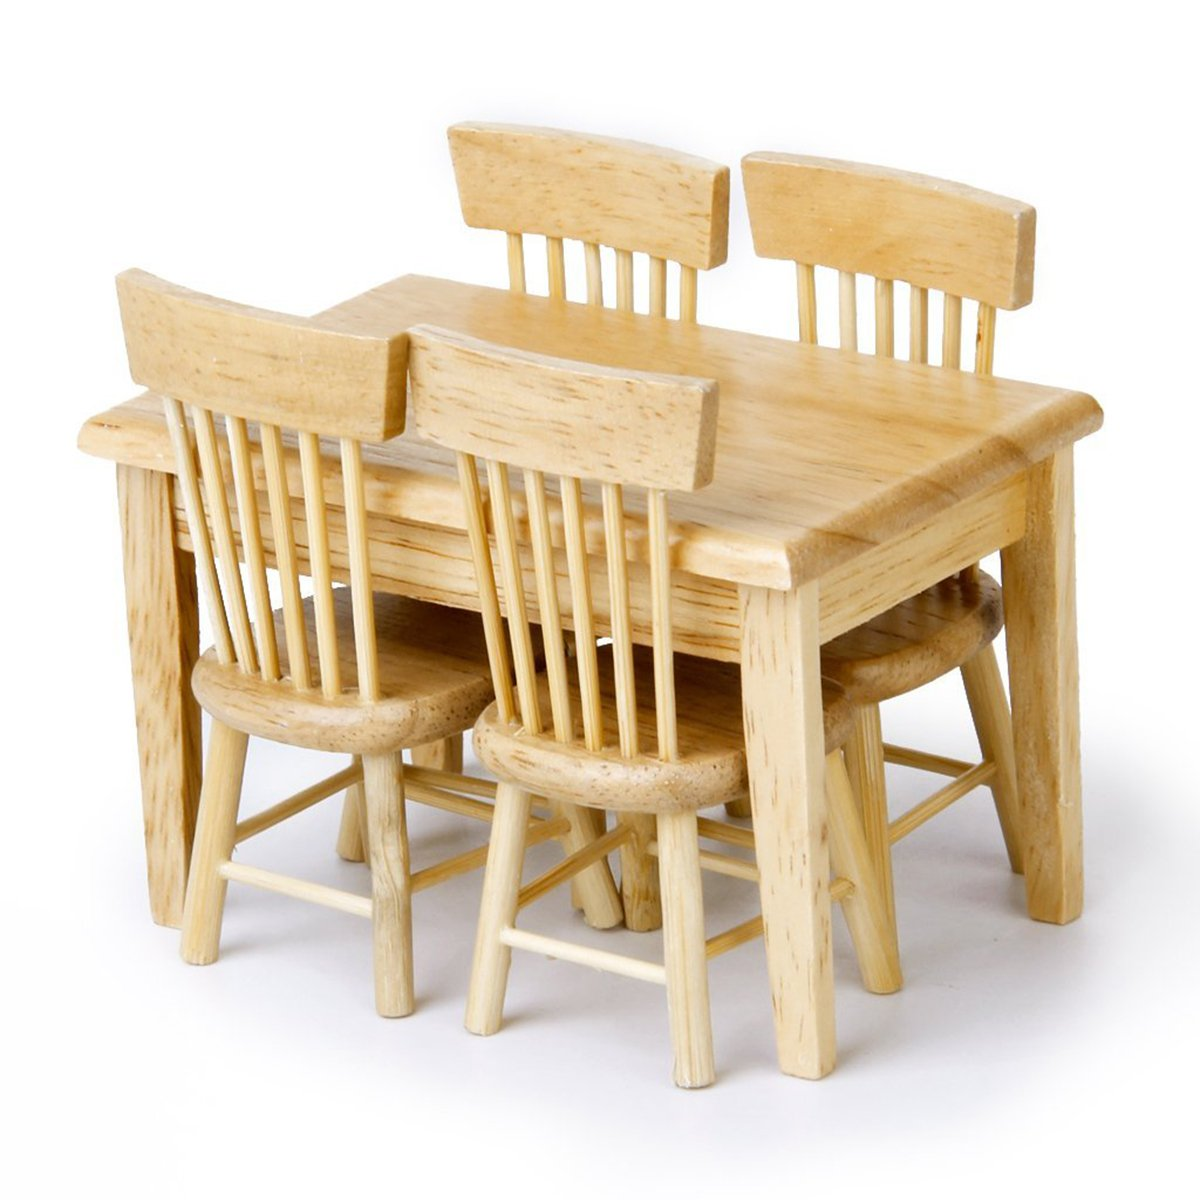 Pixnor 5pcs 112 Dollhouse Miniature Dining Table Chair Wooden Furniture Set (Wood Color)